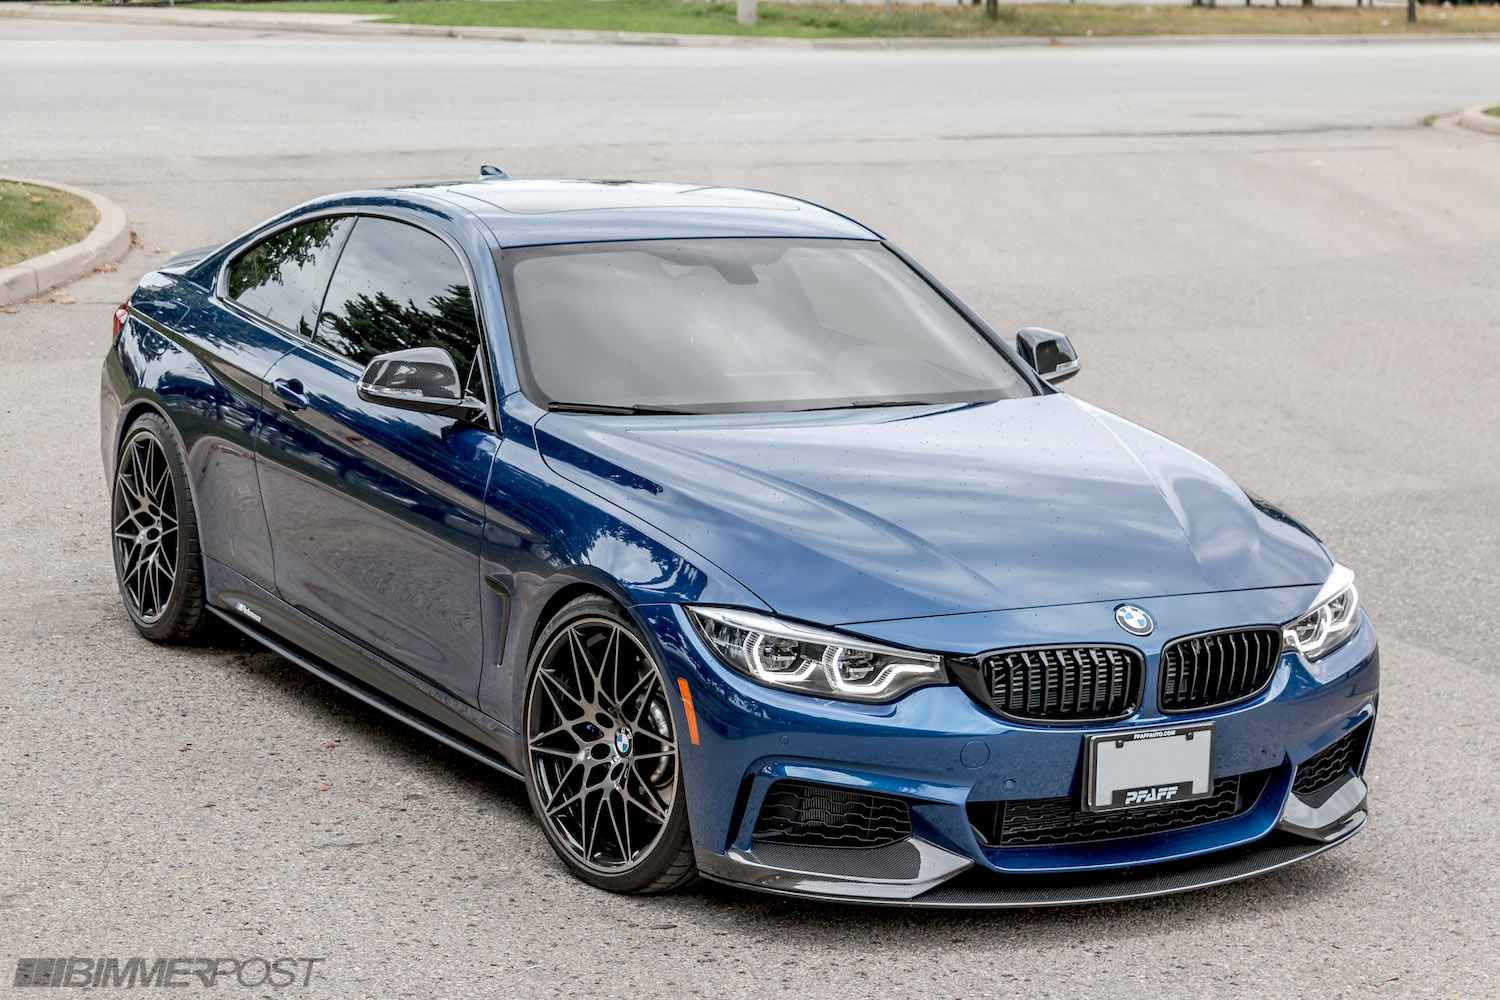 2018 Bmw 440i M Performance Edition Avus Blue Individual